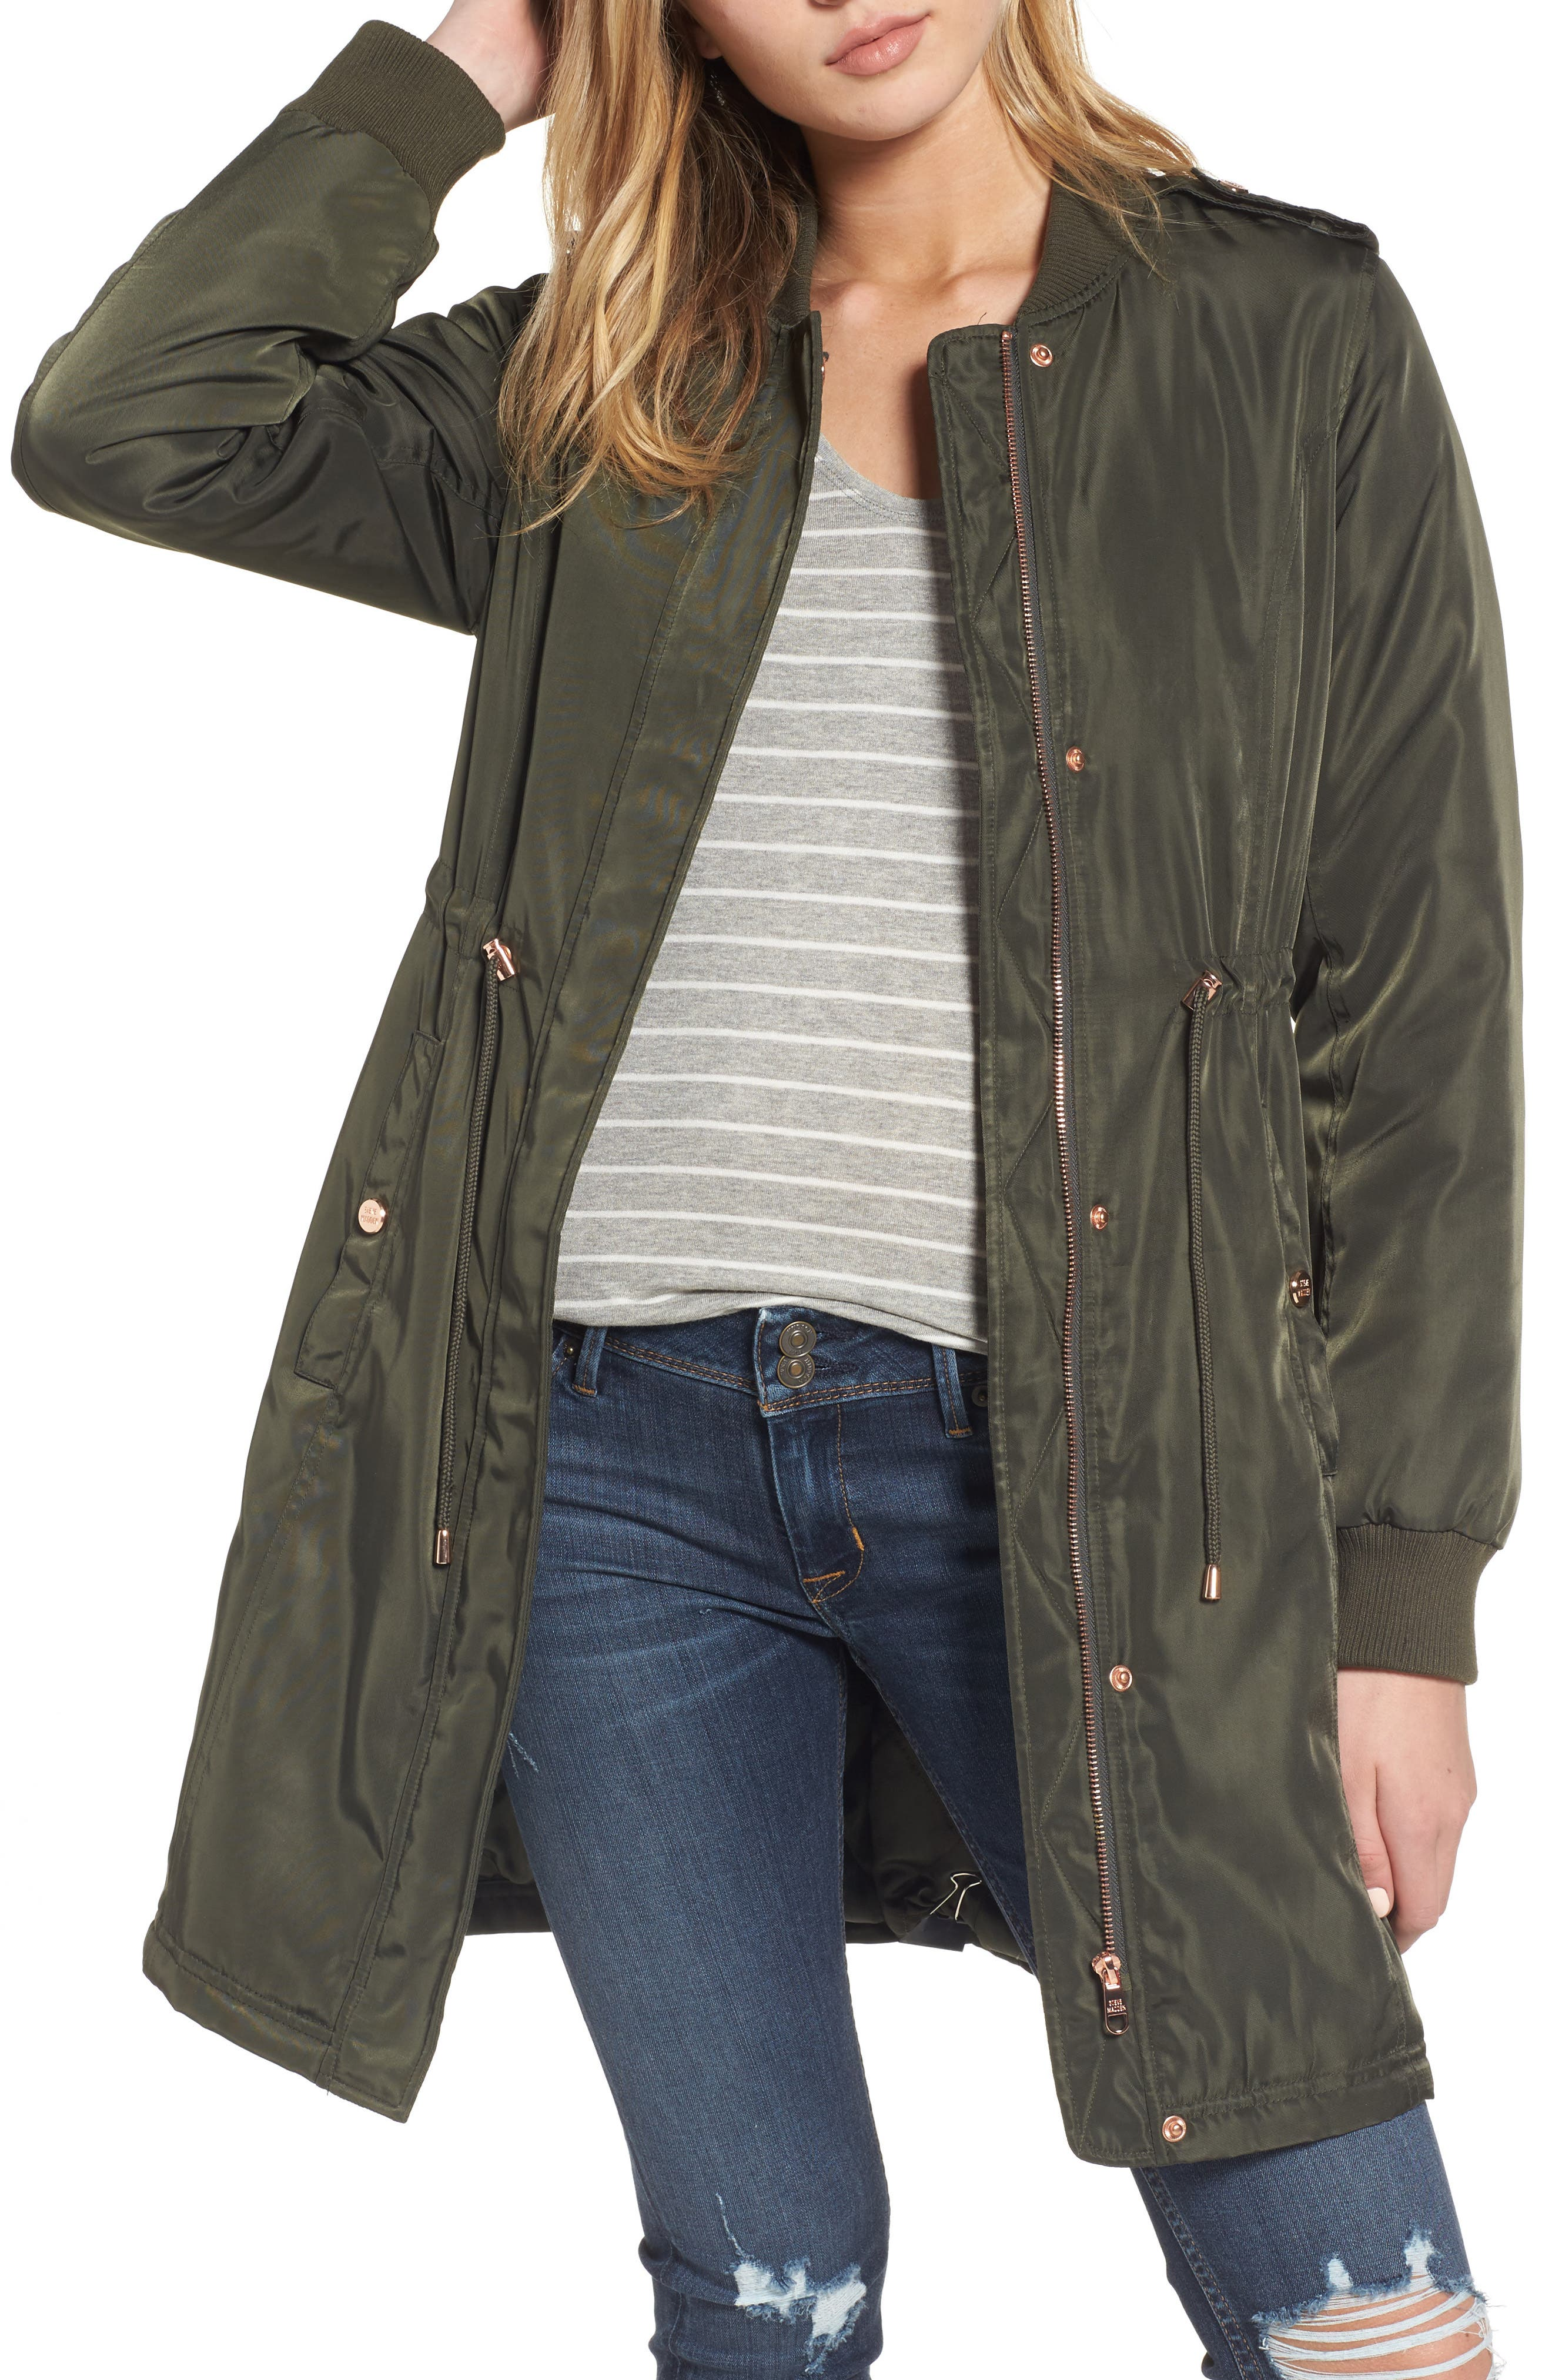 Alternate Image 1 Selected - Steve Madden Drawstring Waist Anorak